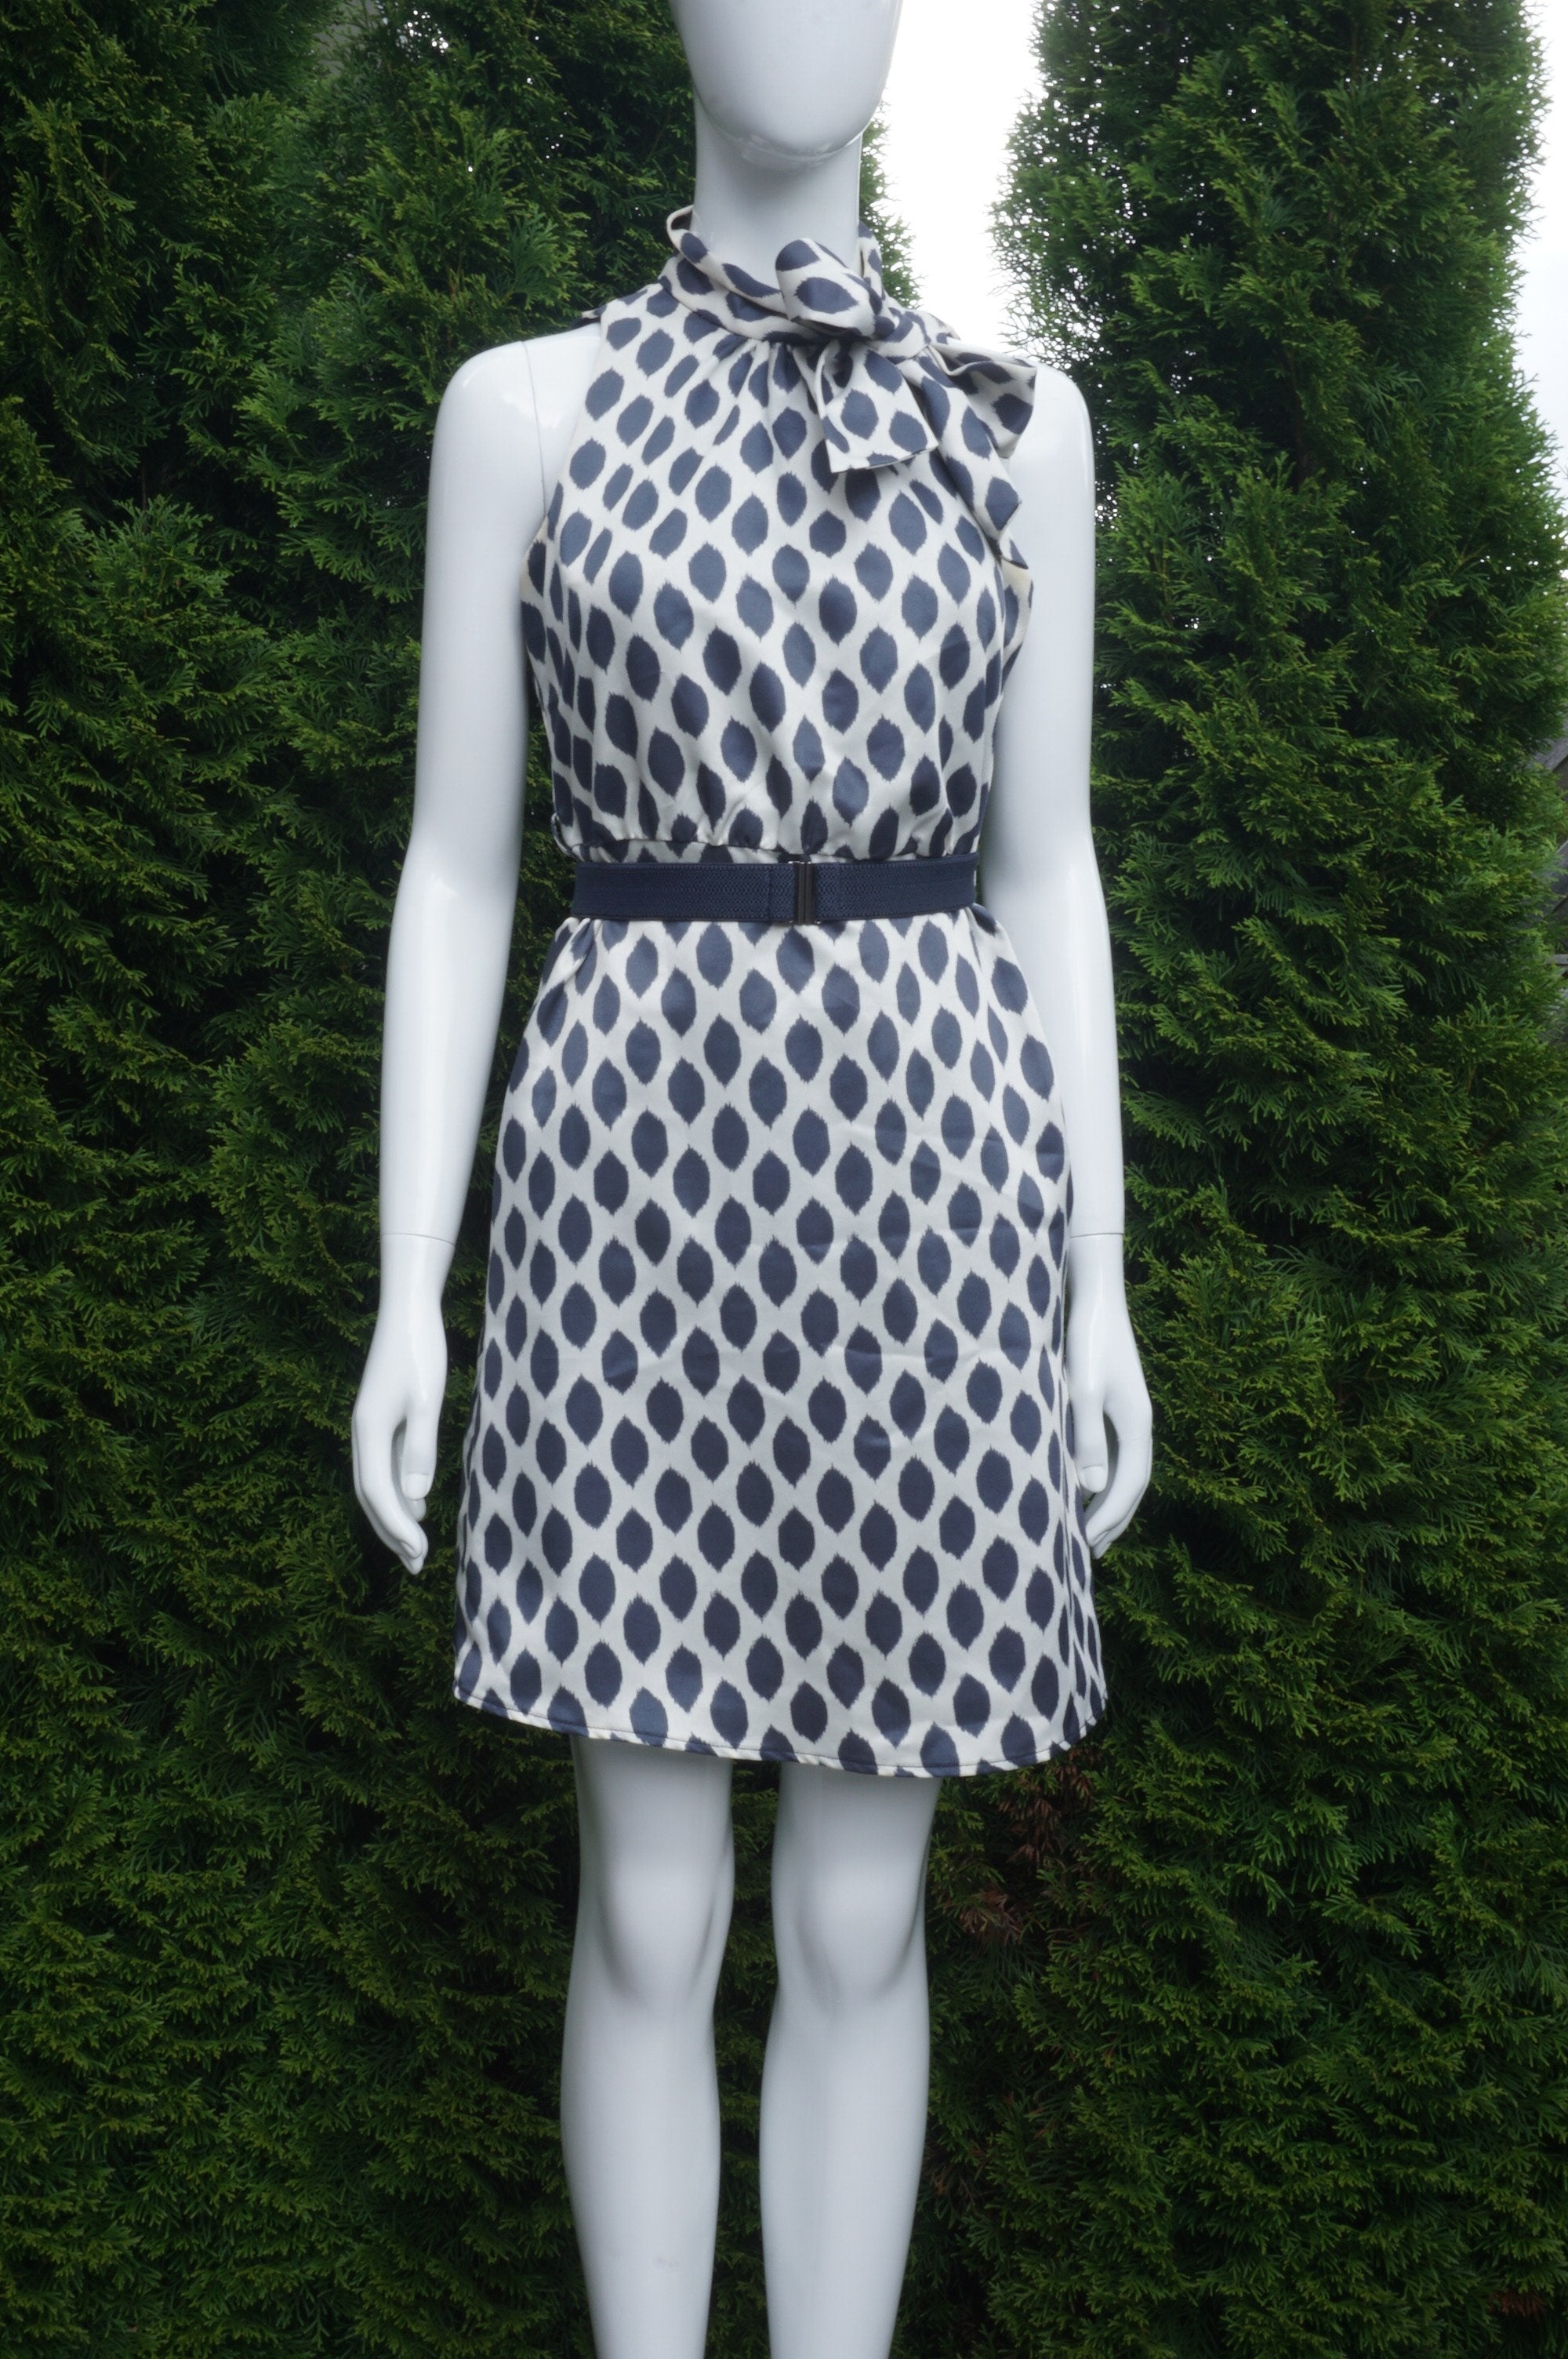 Love 21 Polka Dot Sleeveless Dress with Neck Tie, Zipper on the side. Bust 34 inches, waist 28 inches. Length 35 inches., White, Blue, Shell and lining: 100% Polyester, women's Dresses & Rompers, women's White, Blue Dresses & Rompers, Love 21 women's Dresses & Rompers, polka dot dress, sleeveless dress, neck tie dress